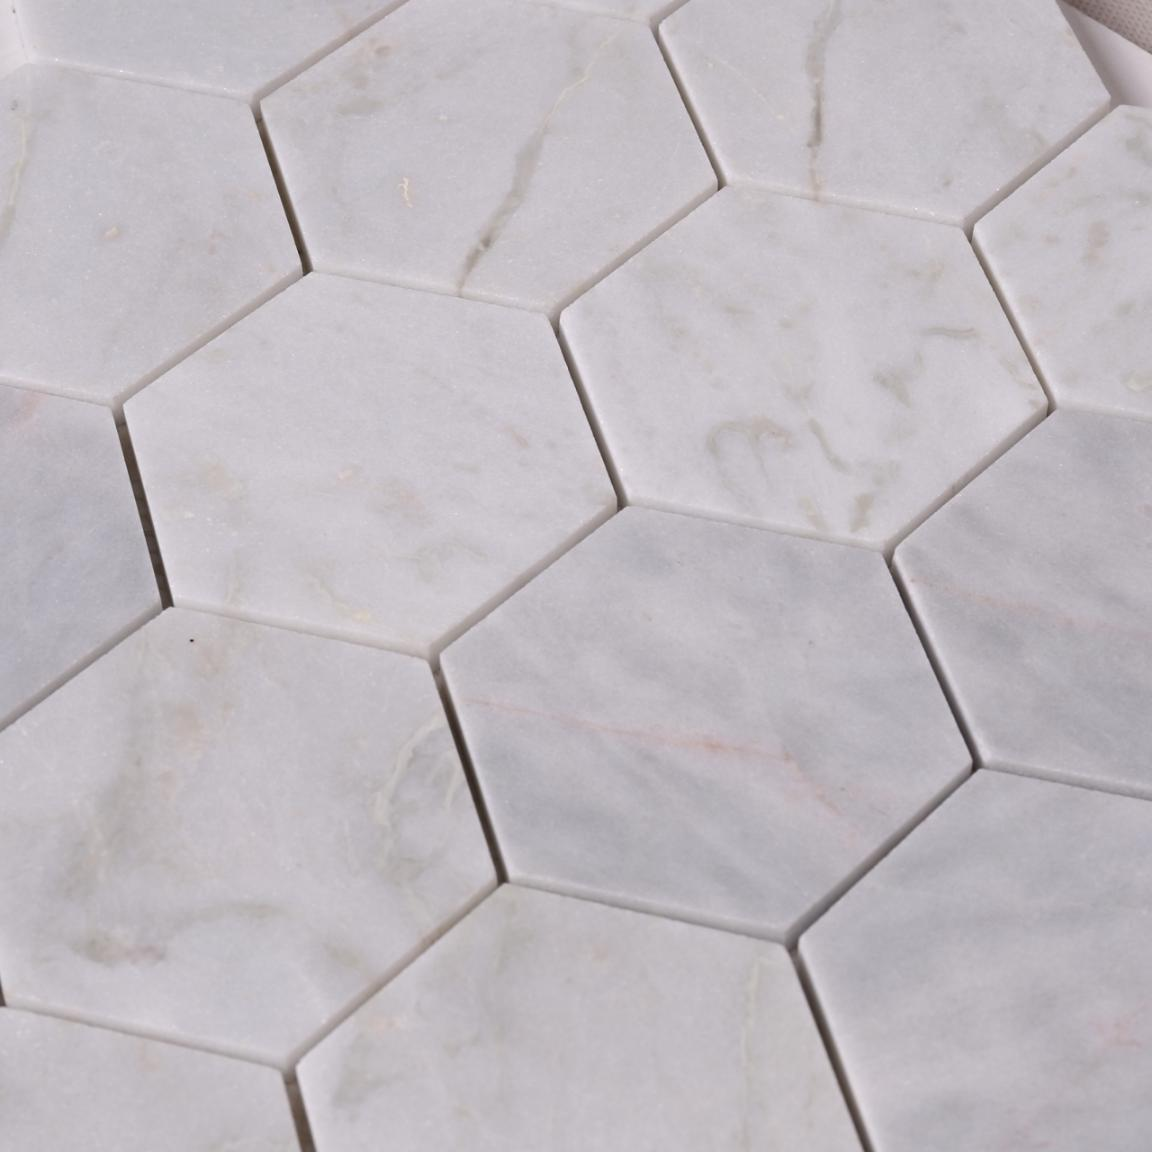 durable glass mosaic tiles black from China for bathroom-Heng Xing-img-1